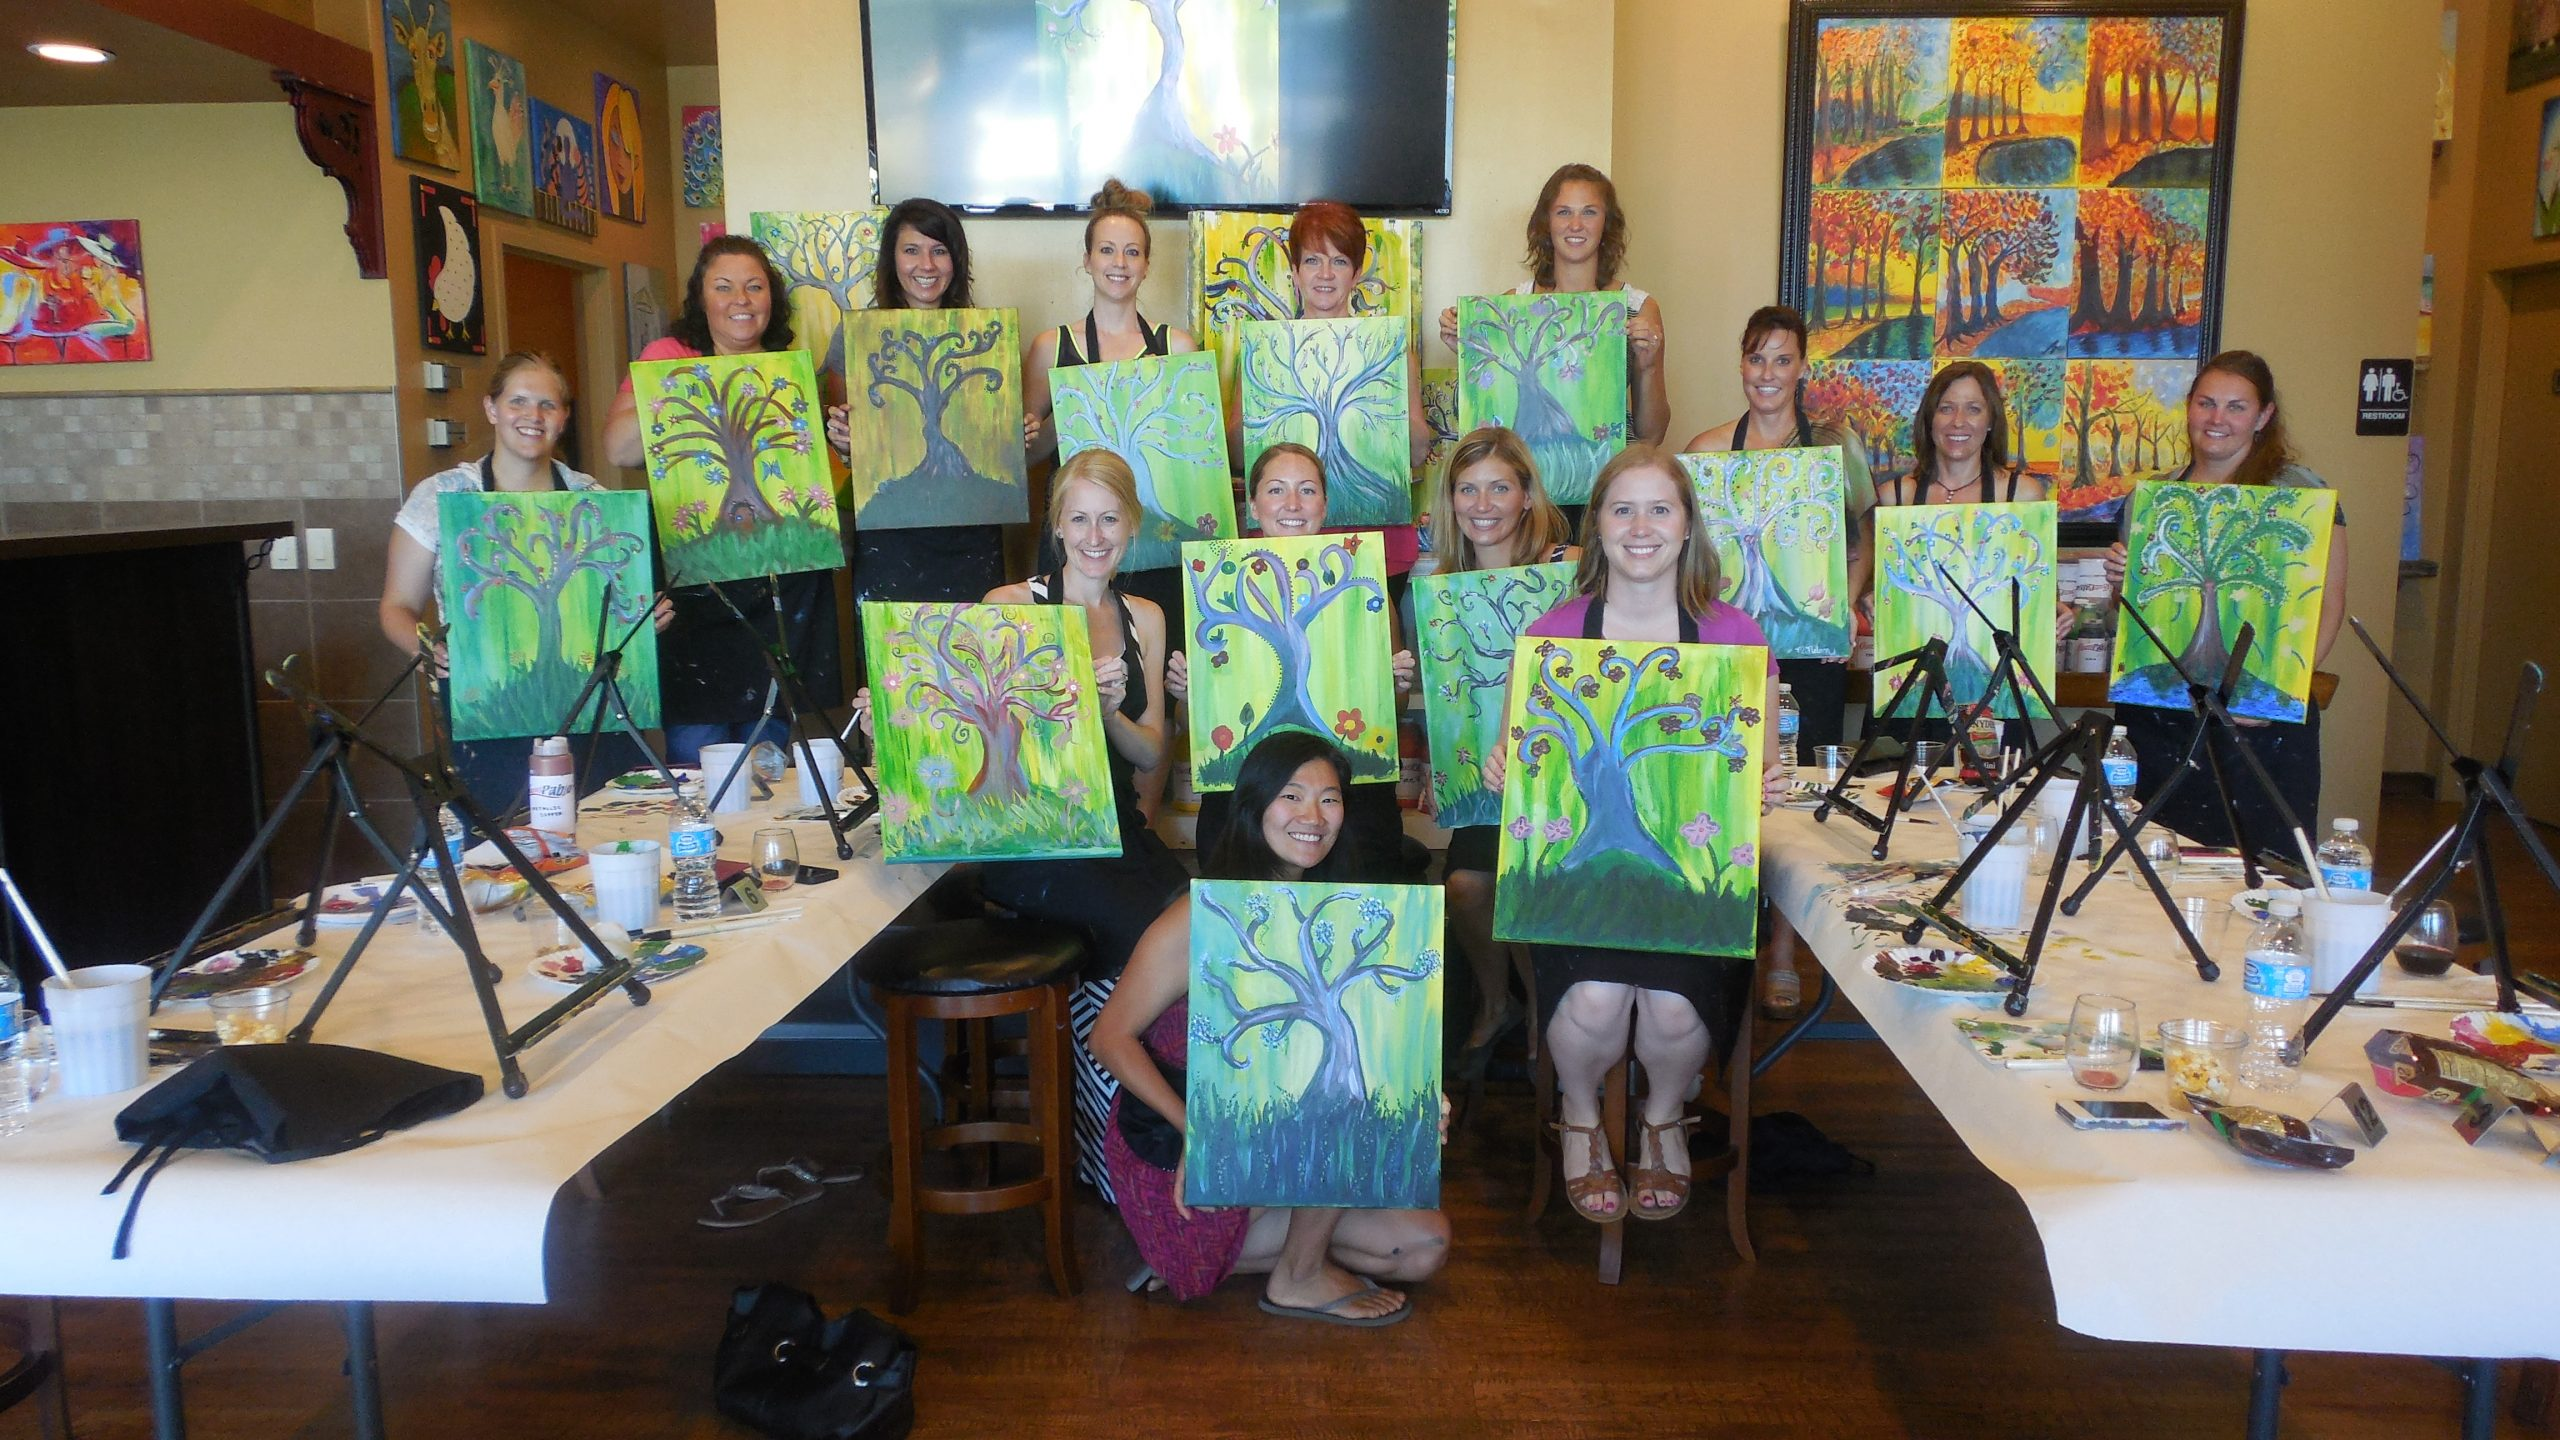 Attending Painting Classes